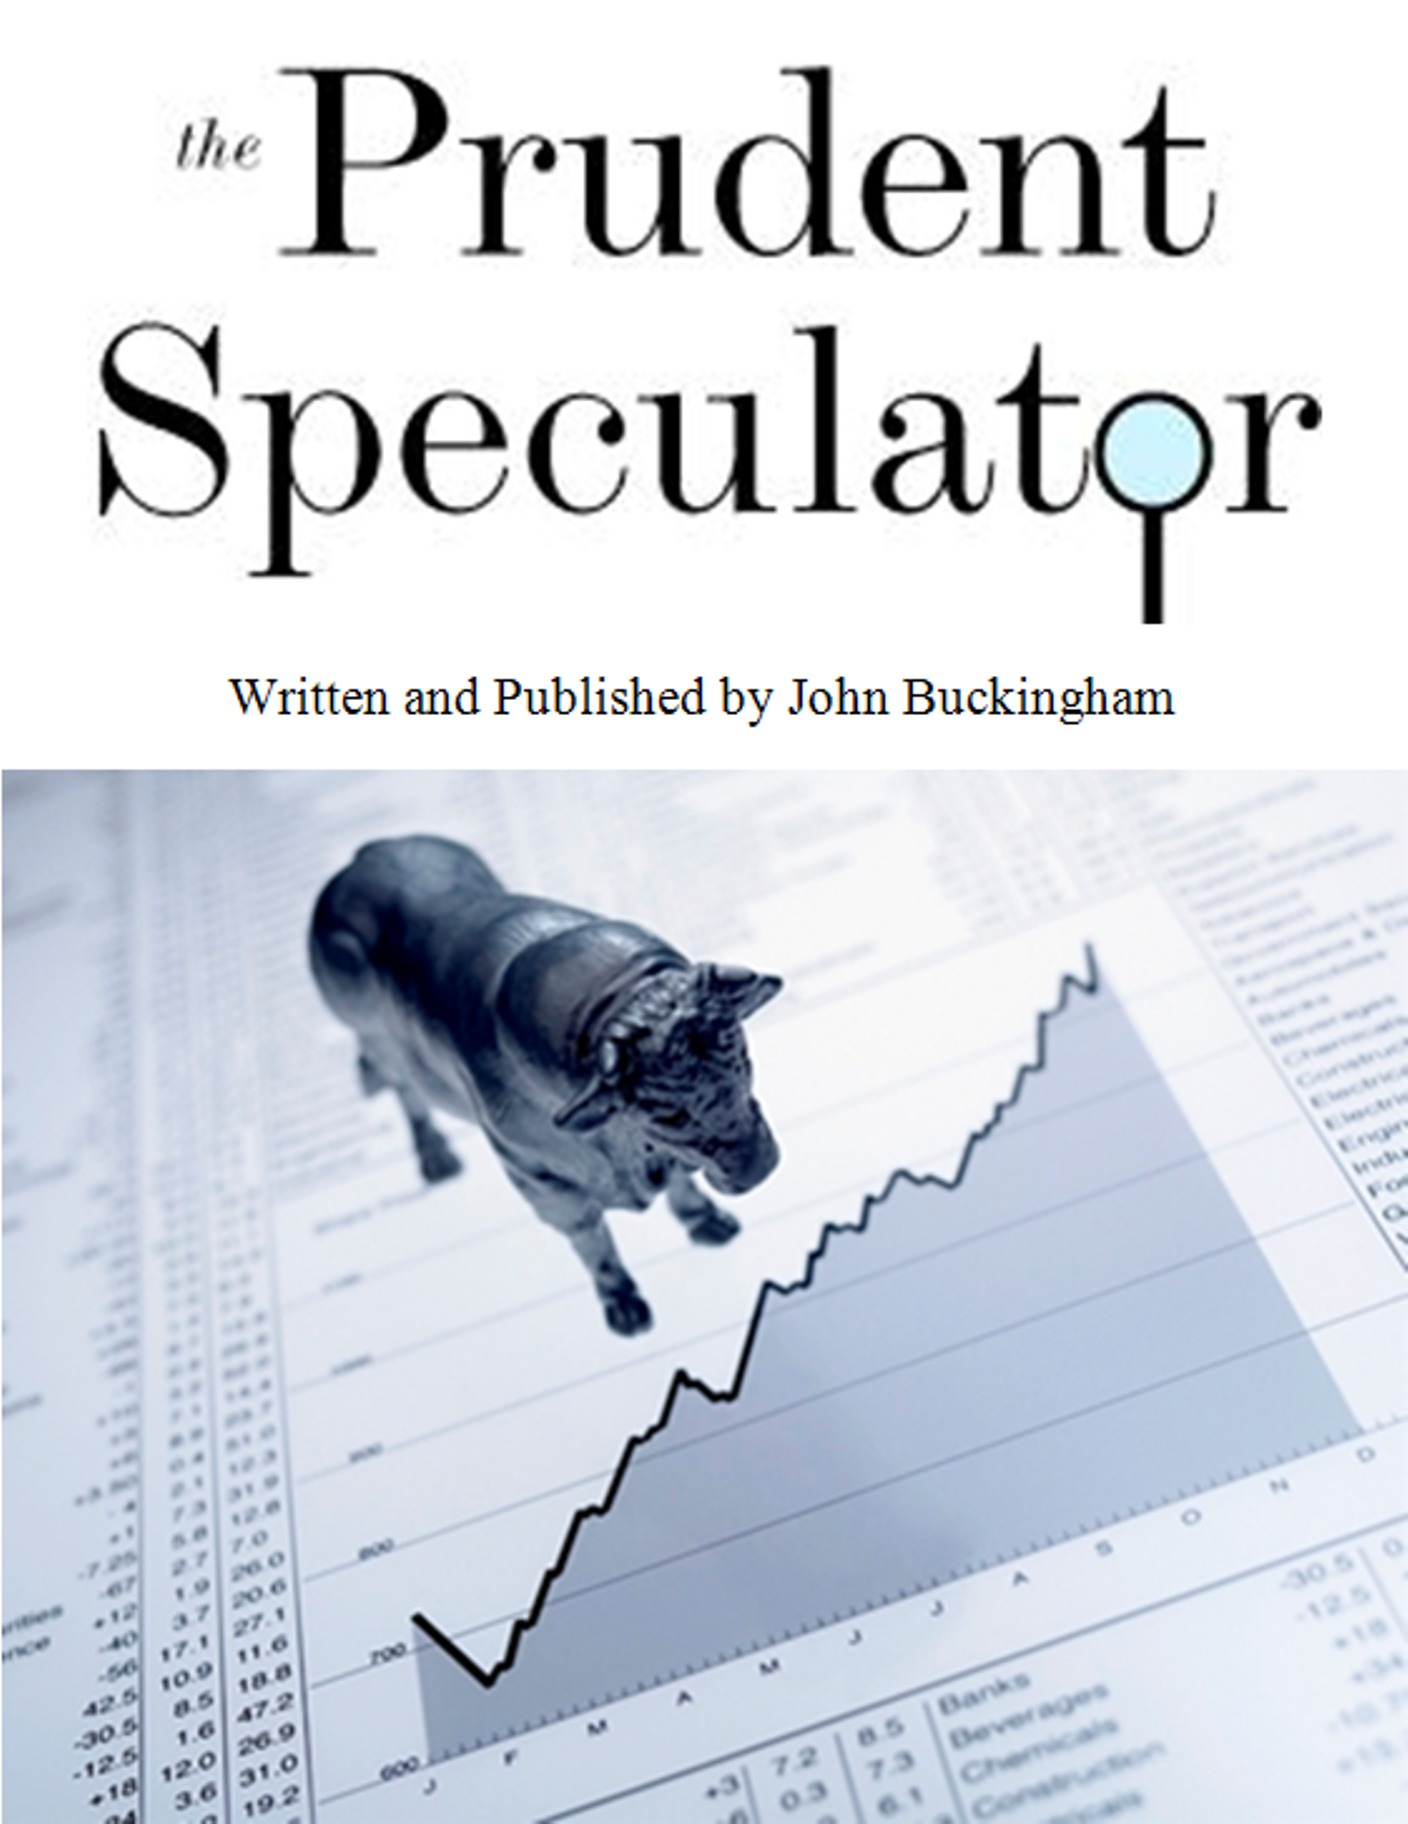 The Prudent Speculator: April 2013